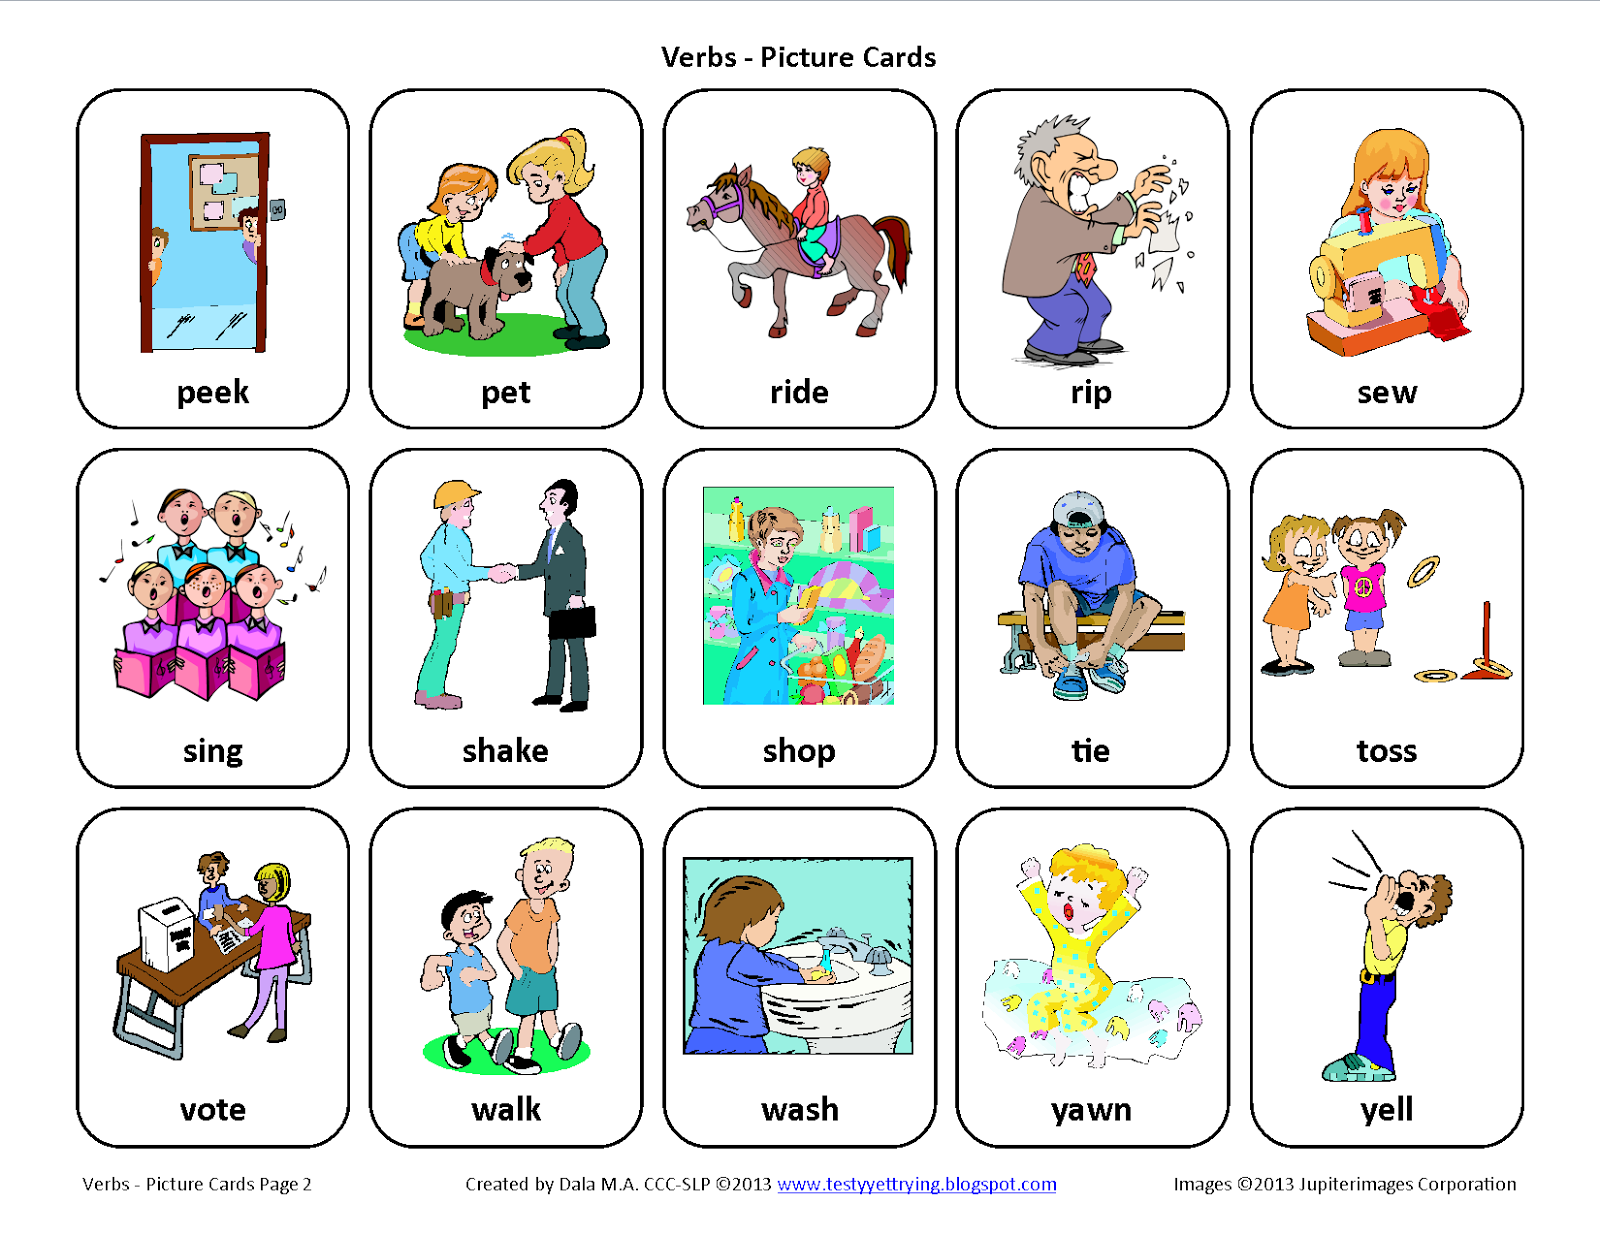 If You Like This Free Card Set You Might Want To Check Out The Premium Speech Therapy Kits Now